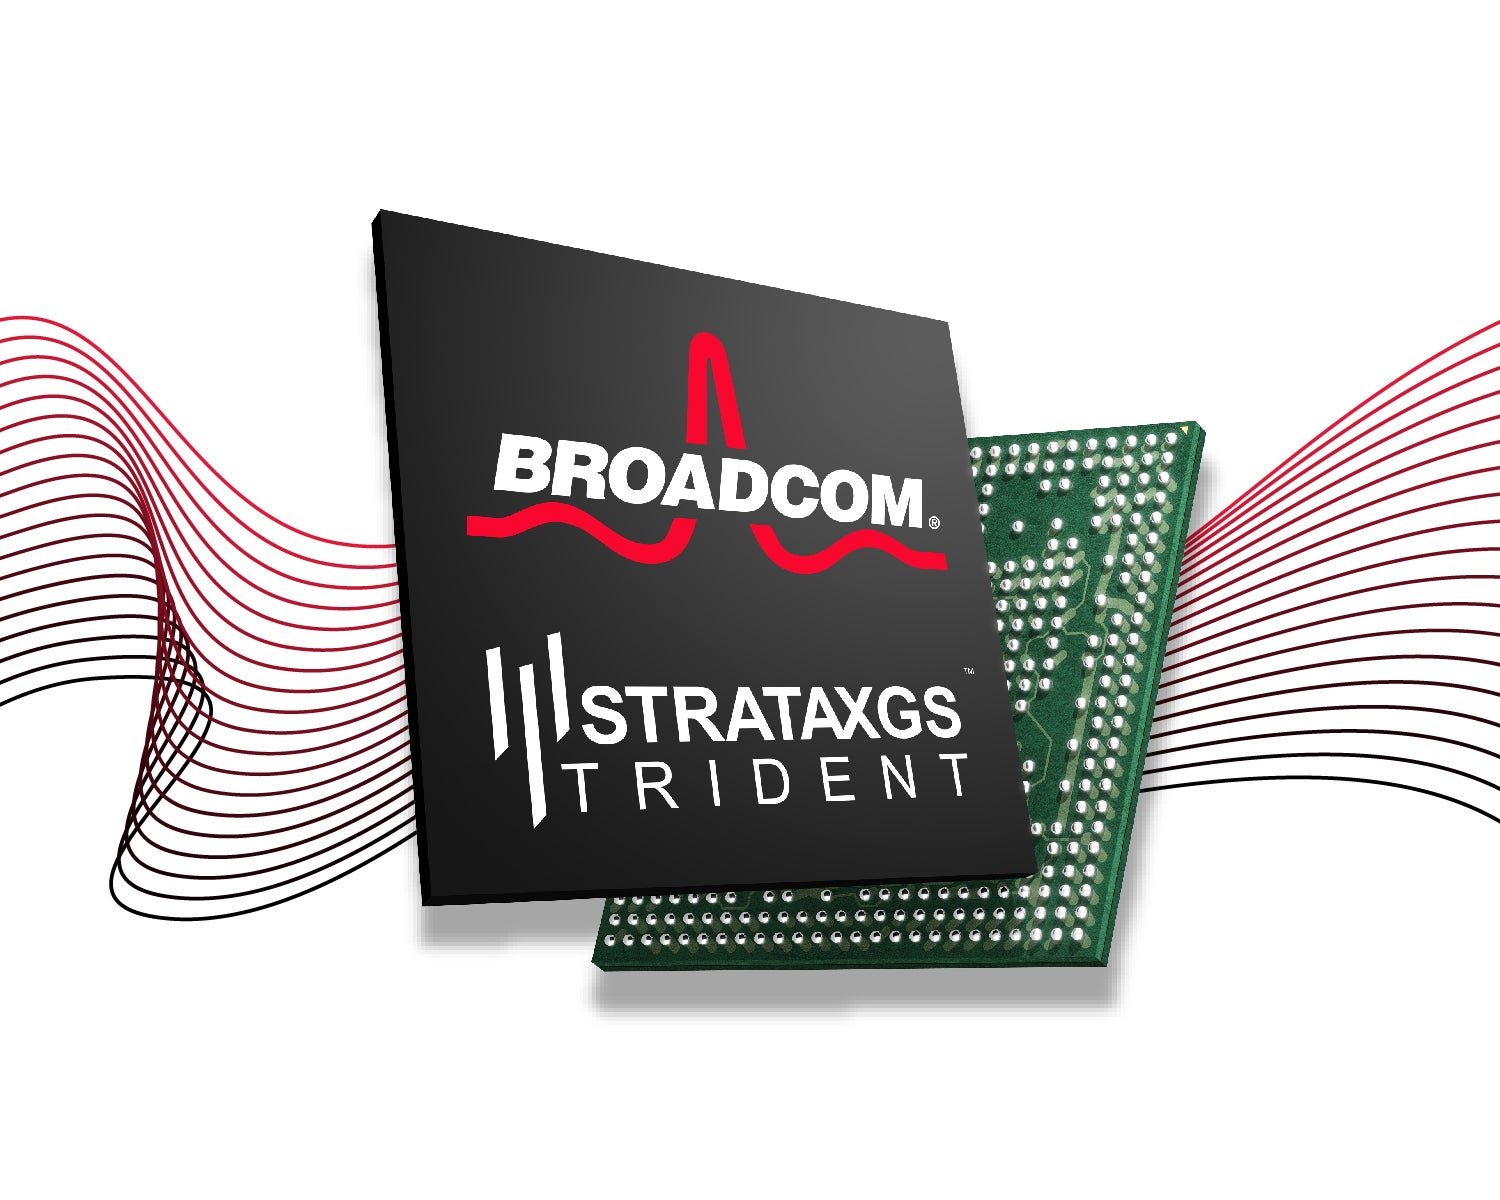 Broadcom Reports Double-Digit Growth as It Awaits the Next